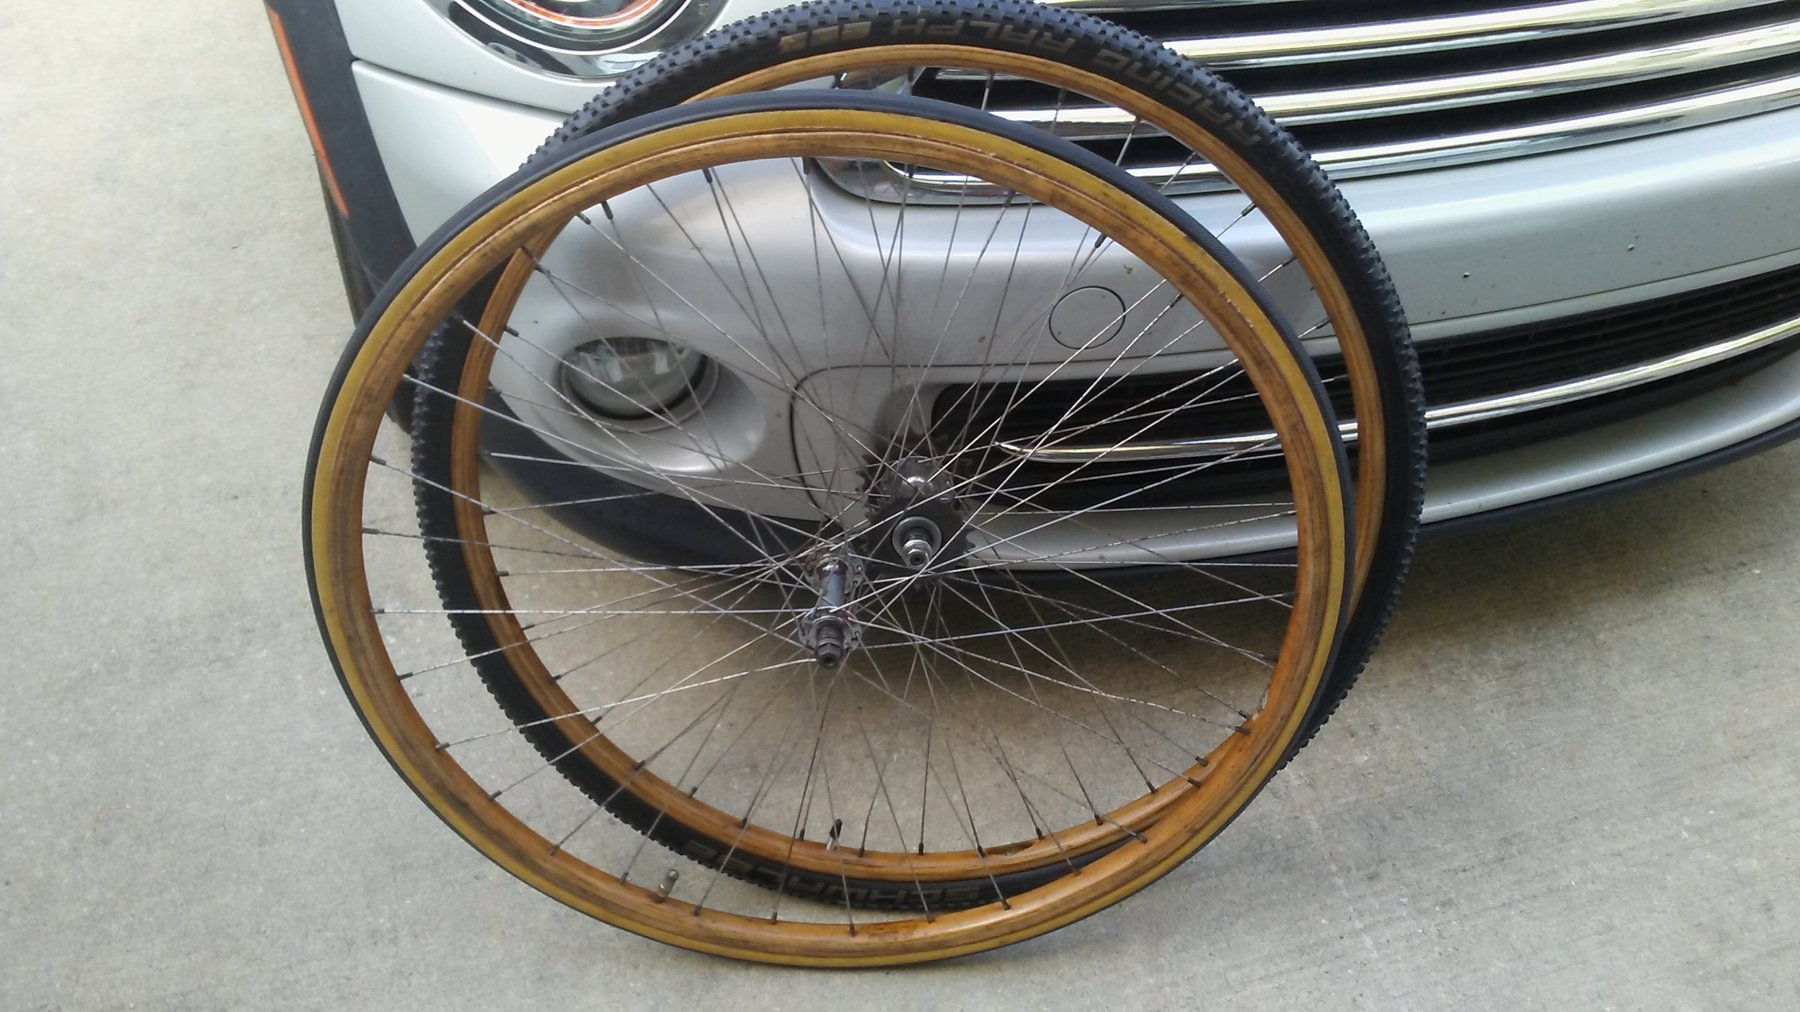 10s, 20s, Racing Wood Wheels!!! Rare?? | The Classic and Antique ...